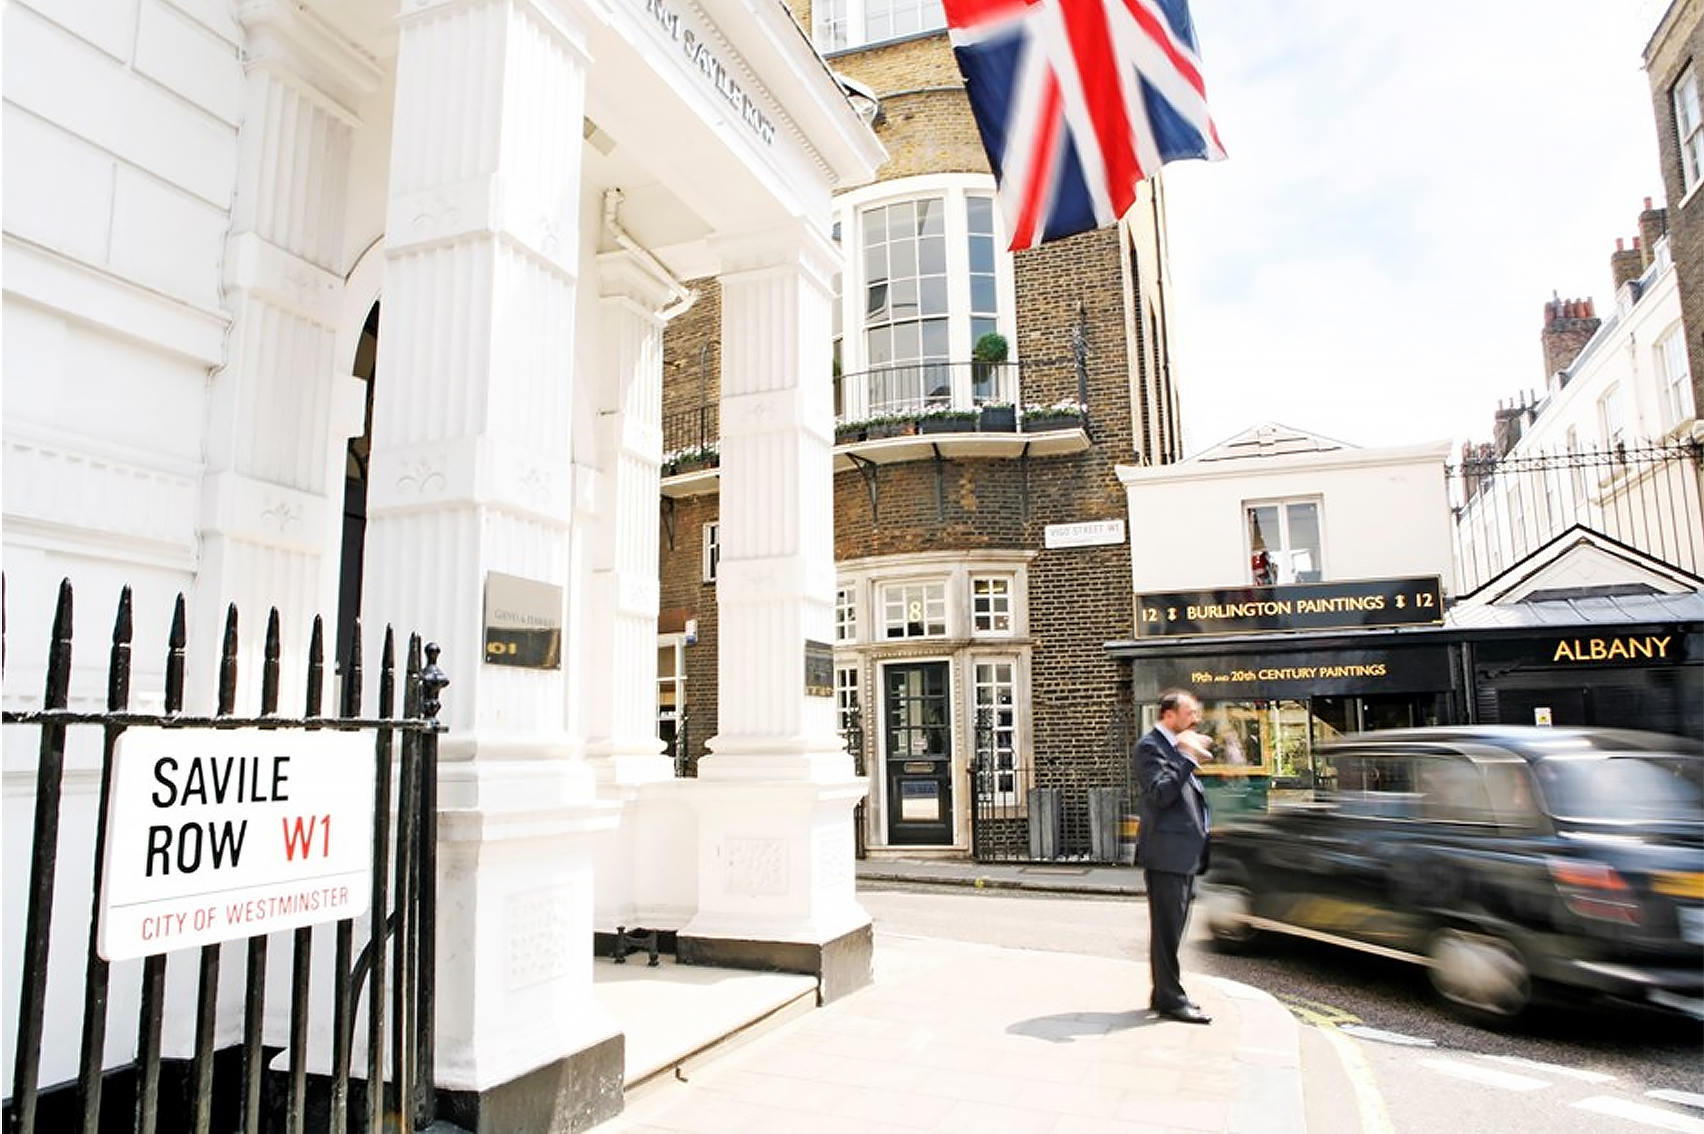 The definitive guide to Savile Row